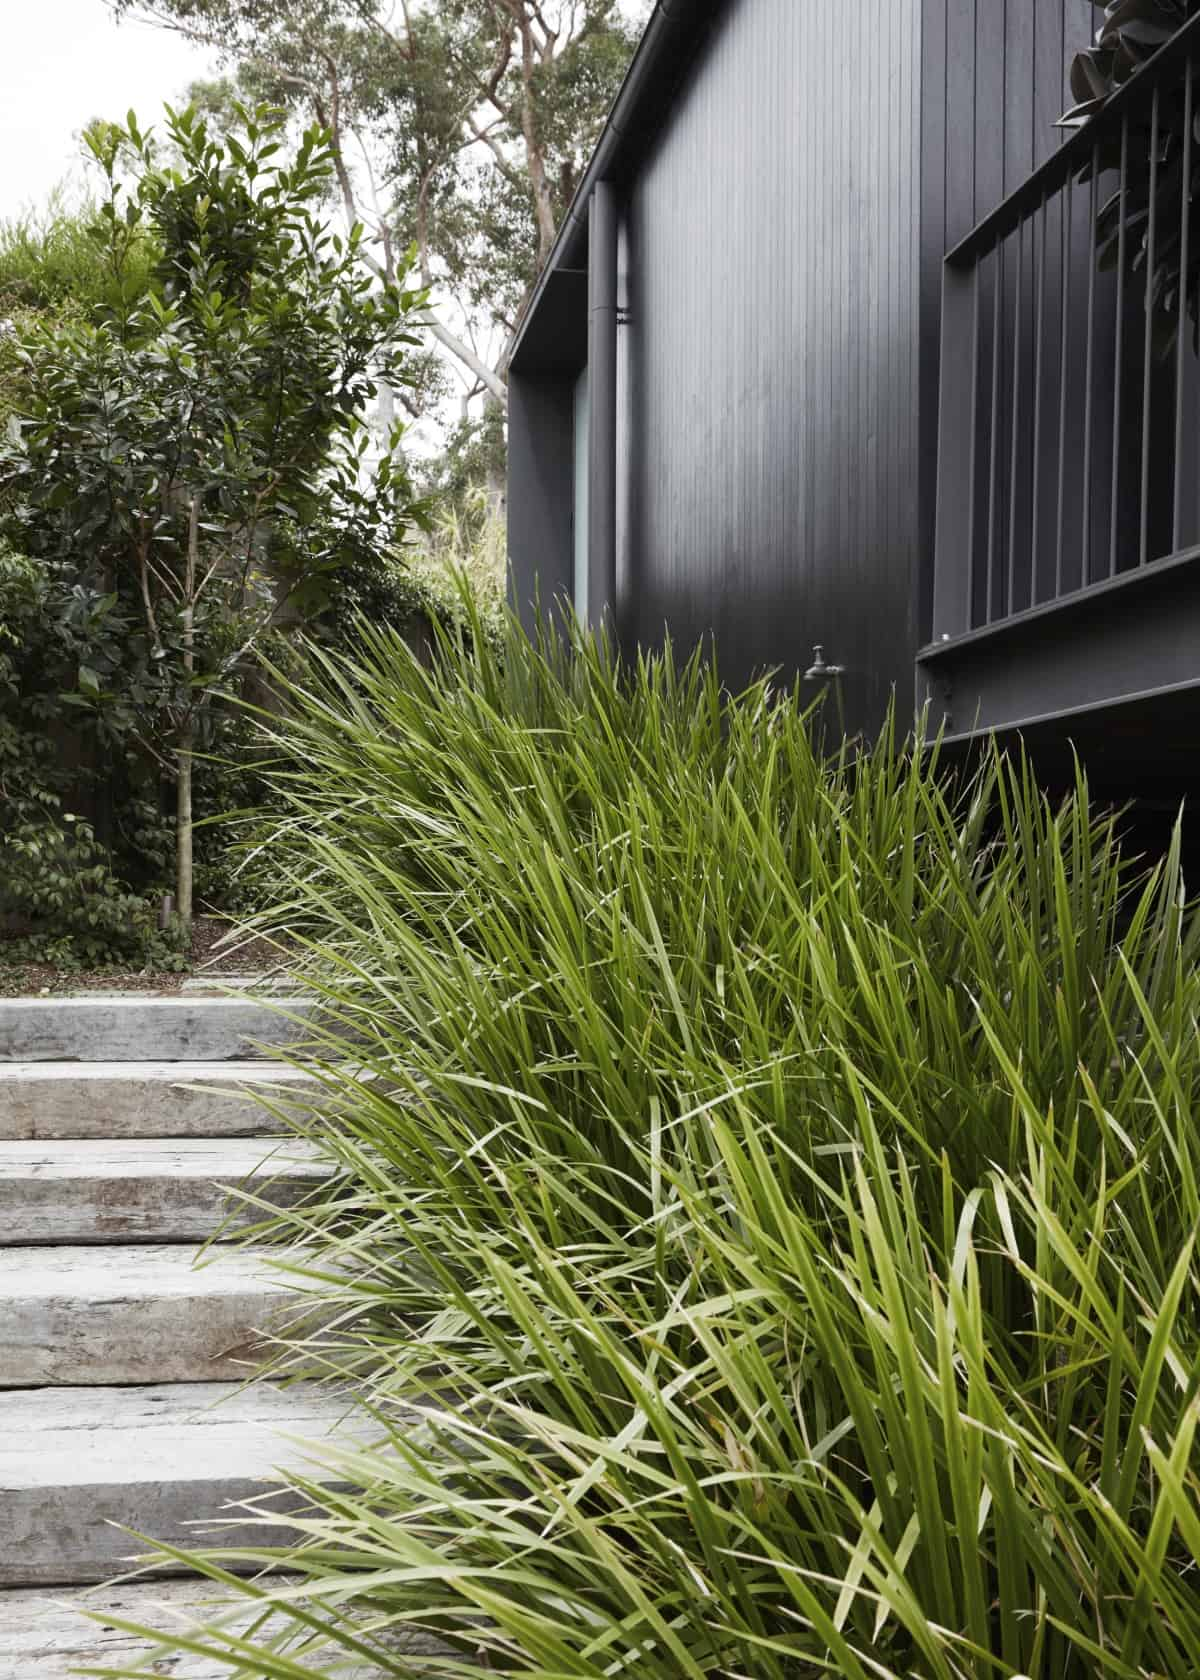 Lomandra Is A Genus Of Native Australian Strappy Or Grass-like Plants